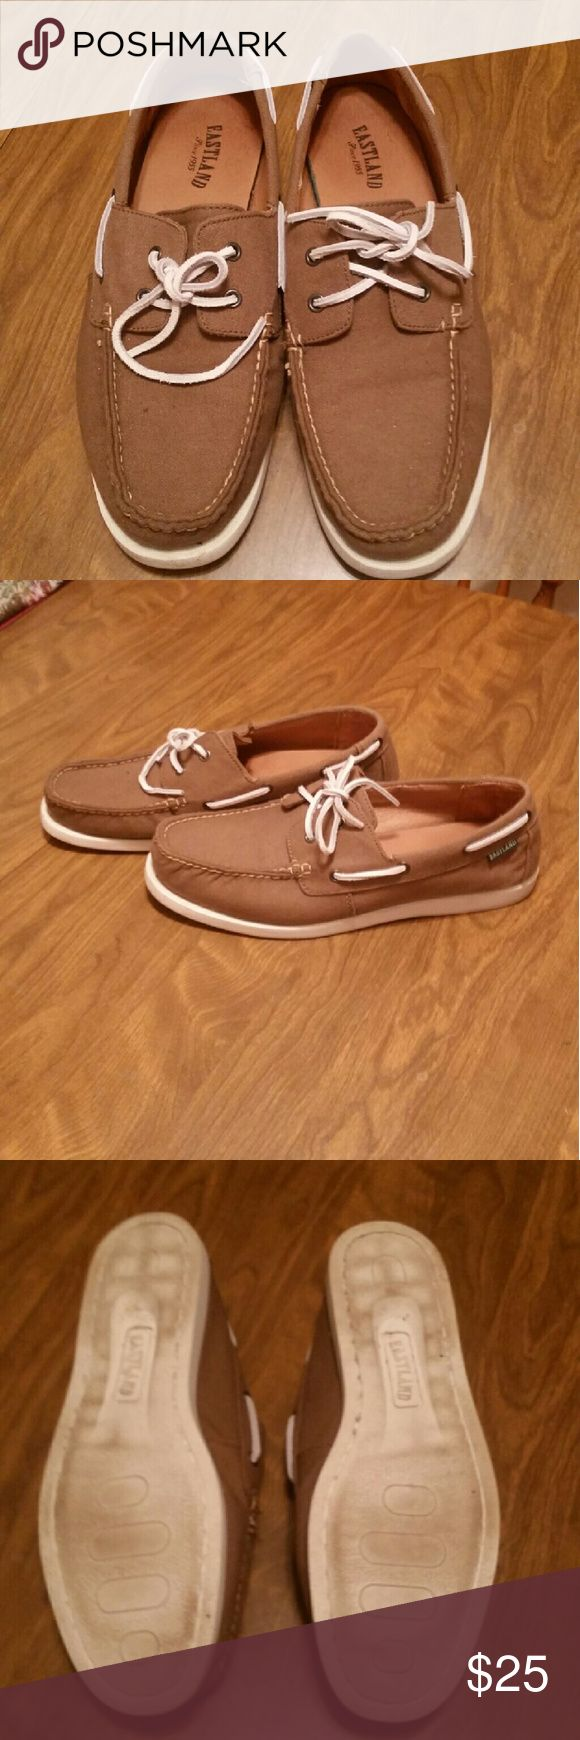 Mens Eastland shoes Great condition Eastland shoes, size 12. Worn minimally as shown on soles. Eastland Shoes Boat Shoes